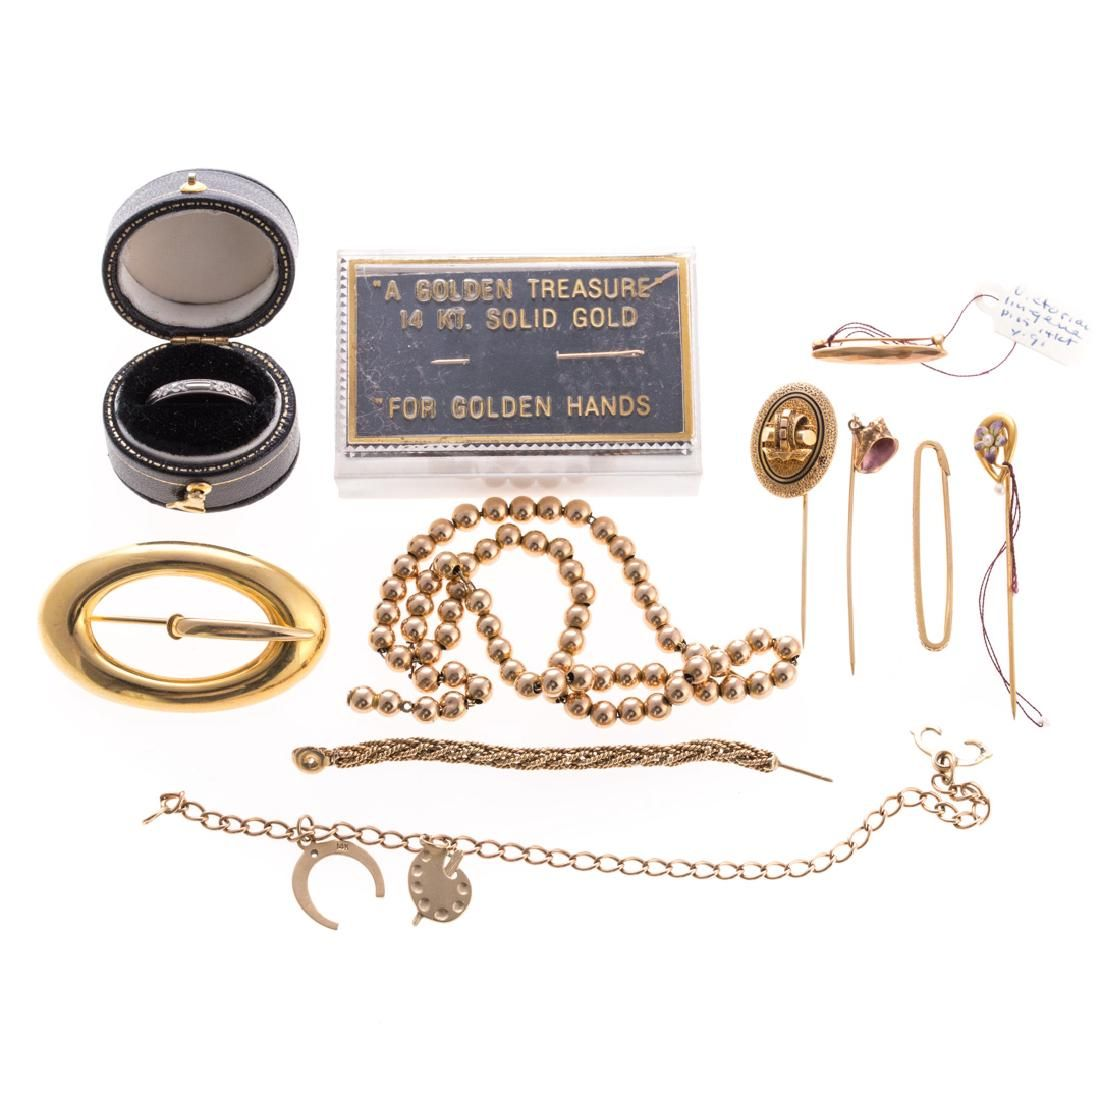 A Collection of Lady's Vintage Jewelry